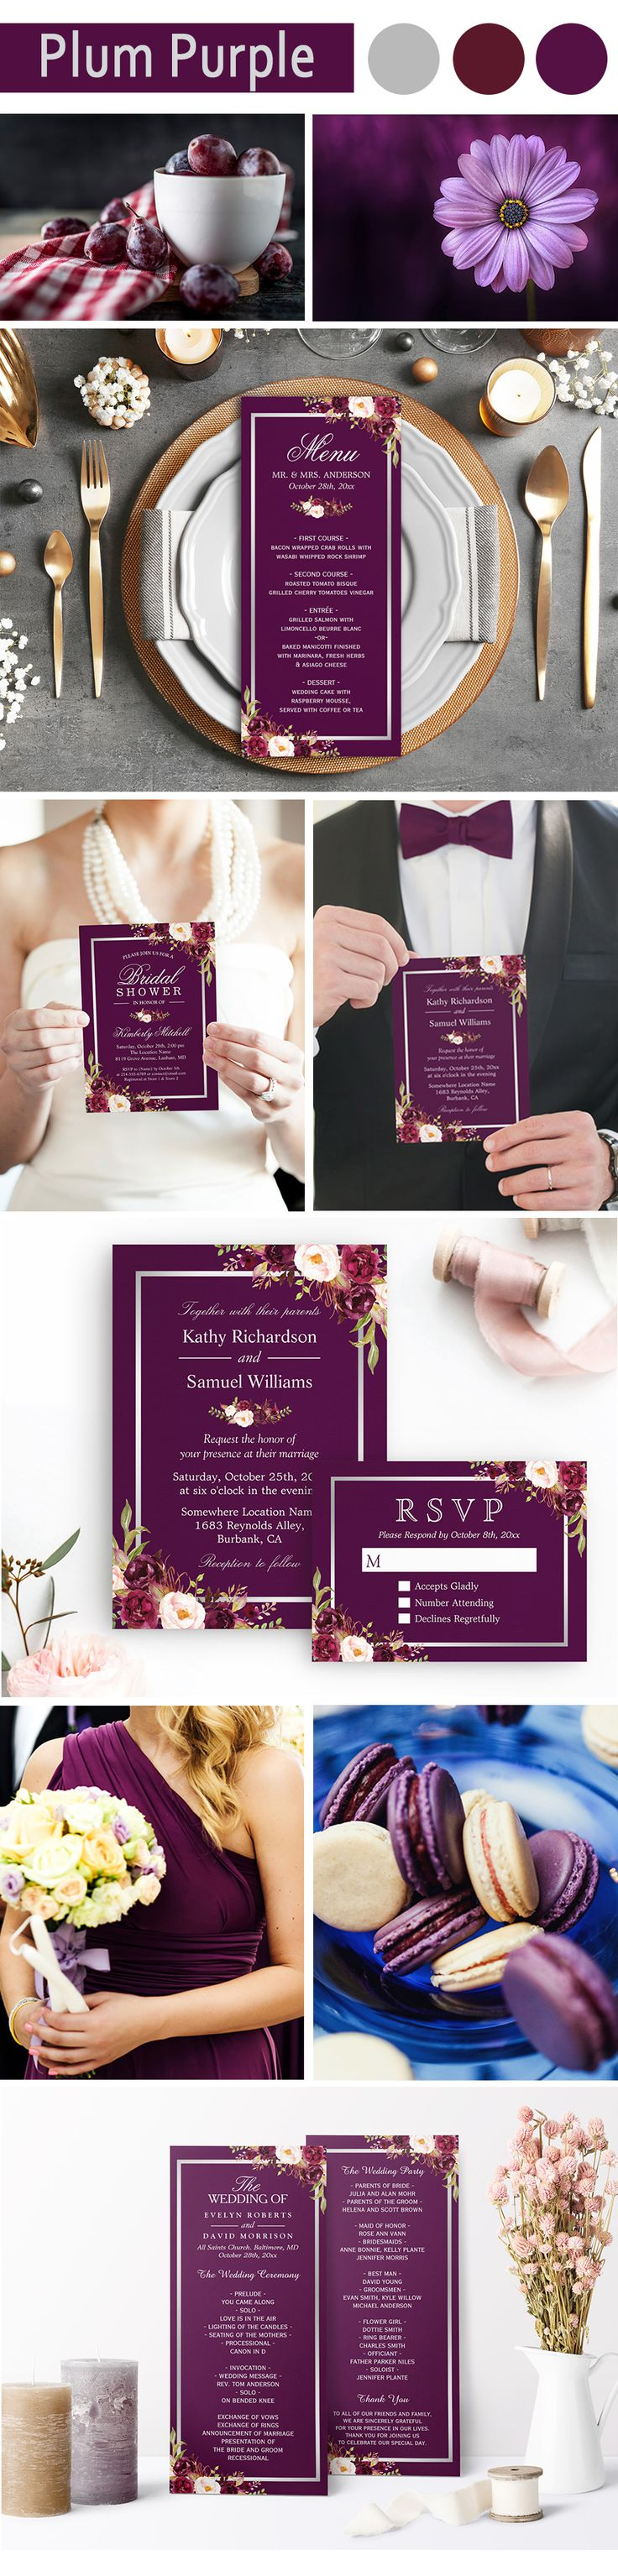 wedding invitation label templates%0A A Plum Purple Floral Silver Gray Invitation Suite Invitation Suite  with  items from invitations to